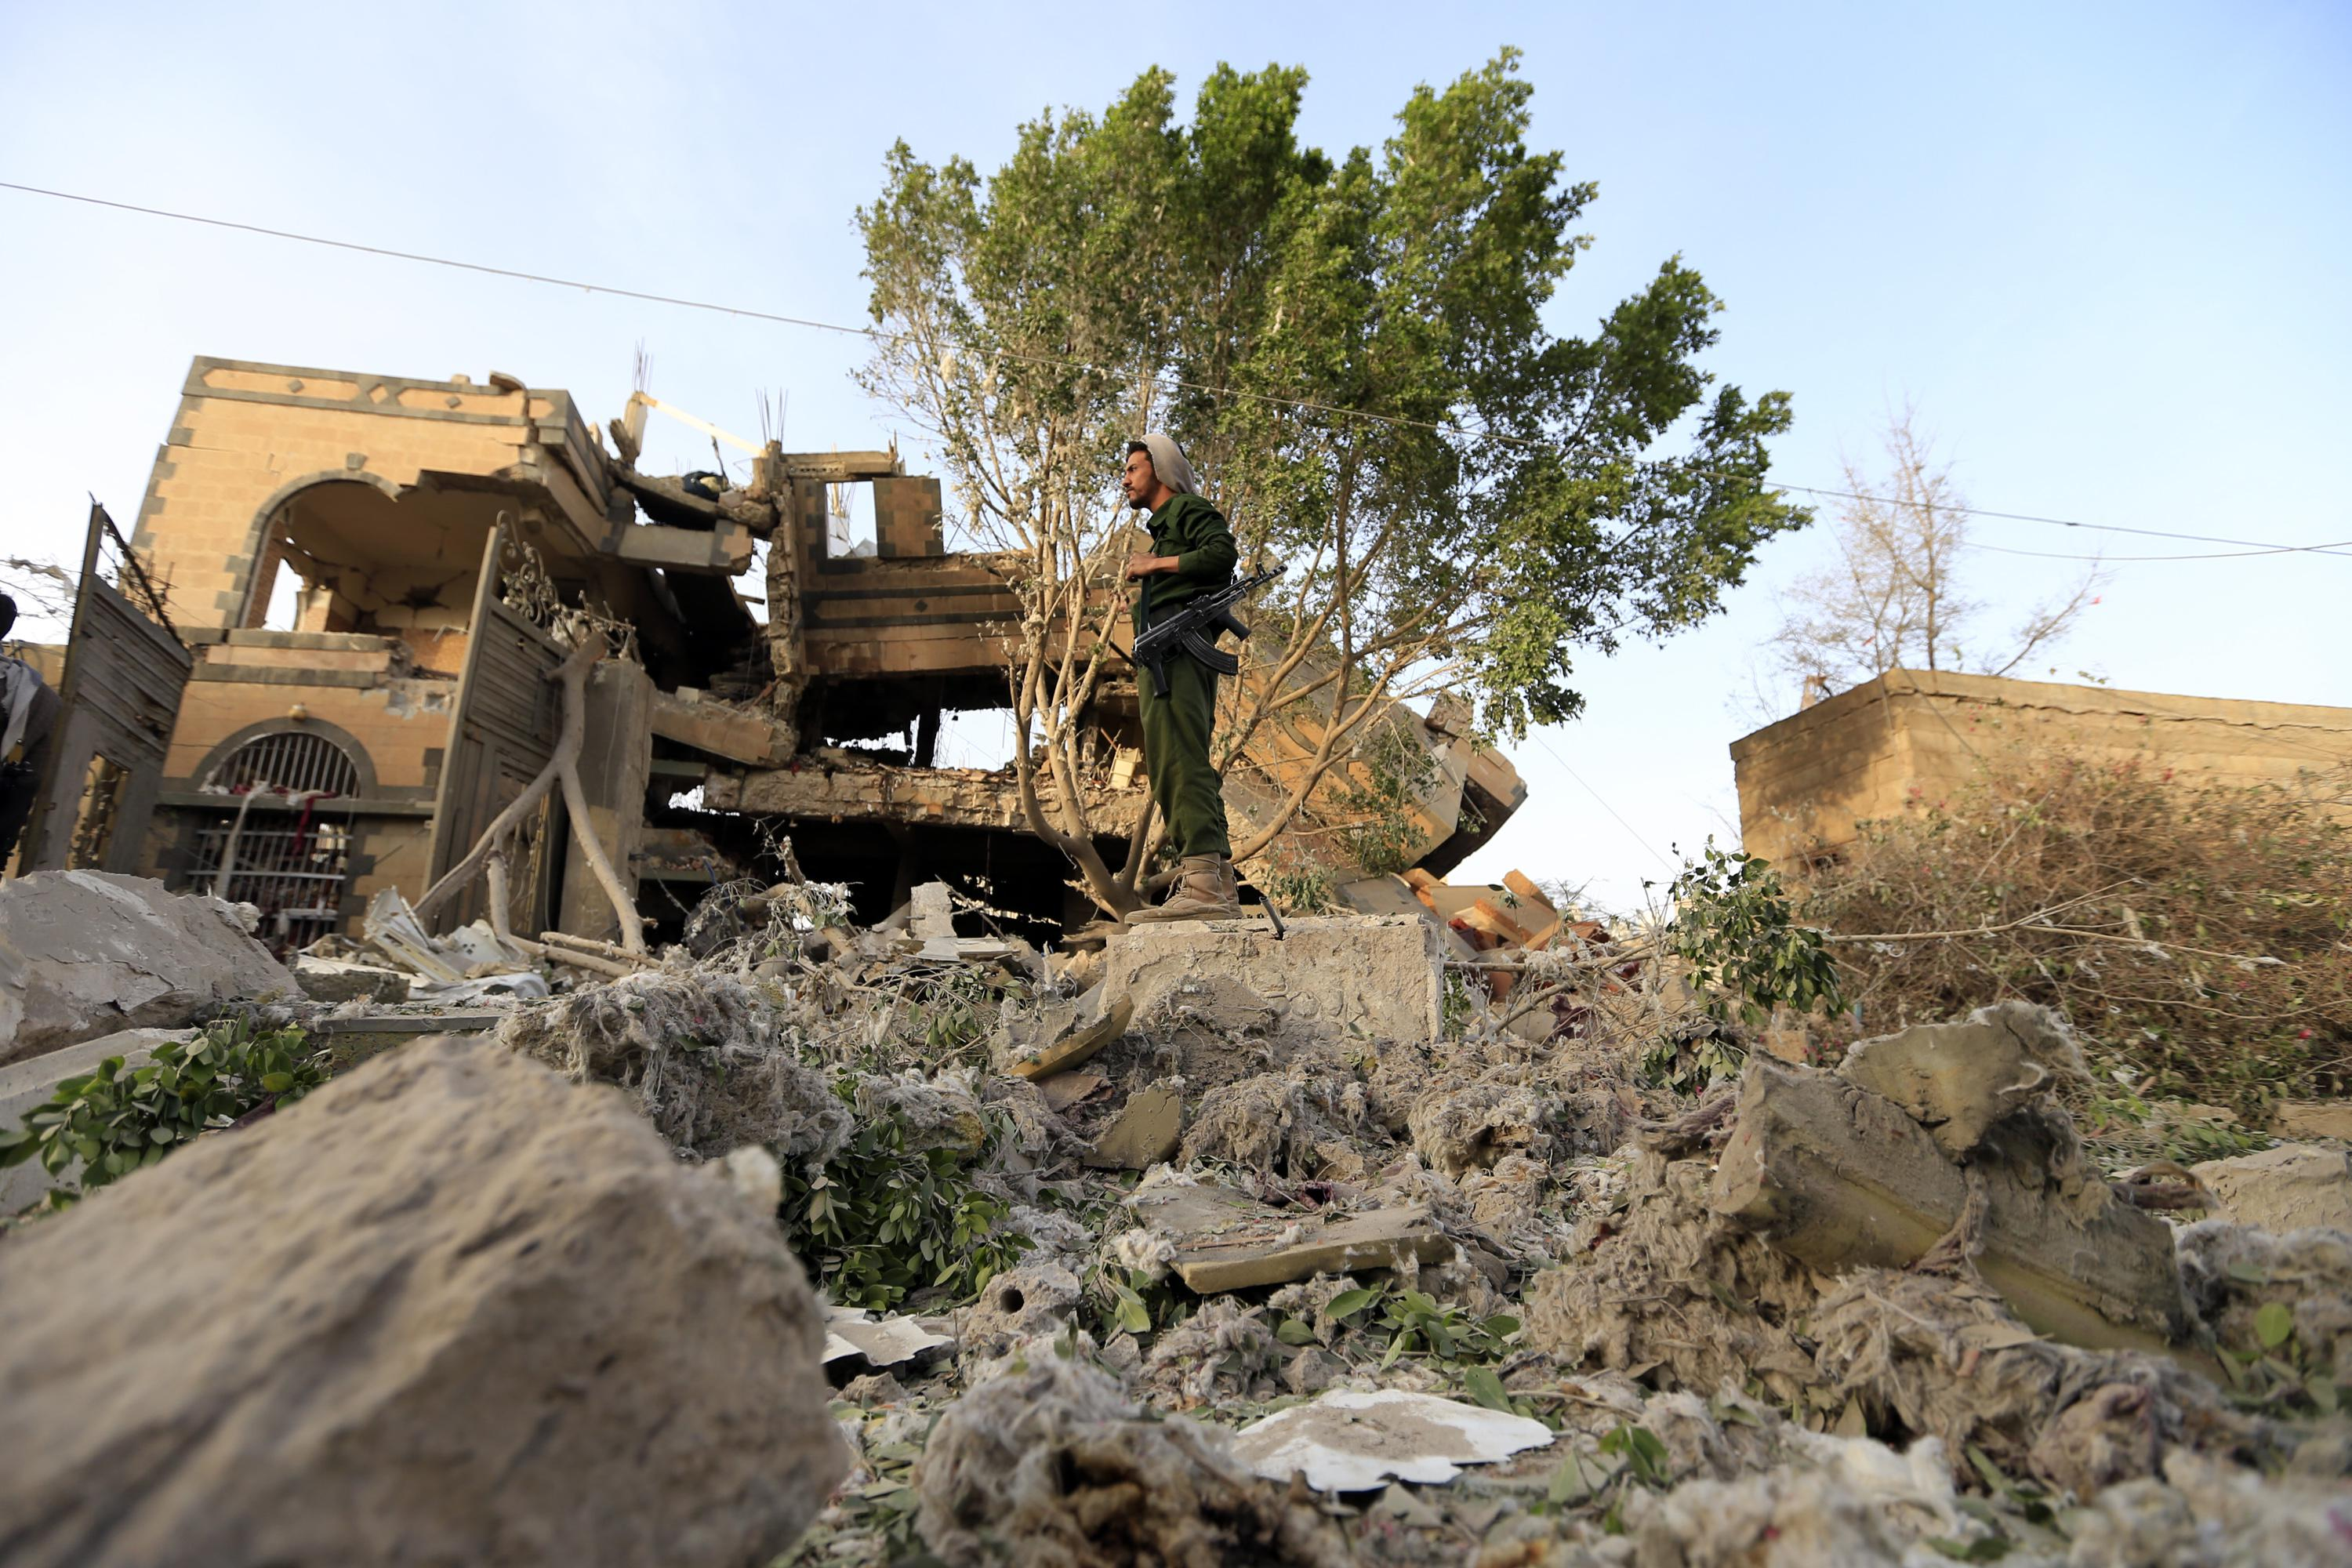 A Yemeni soldier stands in the rubble of a destroyed house in the aftermath of a reported air strike by the Saudi-led coalition in a neighbourhood in the Yemeni capital Sanaa on June 6, 2018. - According to media reports, at least nine Yemenis, including two women, were injured. (Photo by MOHAMMED HUWAIS / AFP)        (Photo credit should read MOHAMMED HUWAIS/AFP/Getty Images)